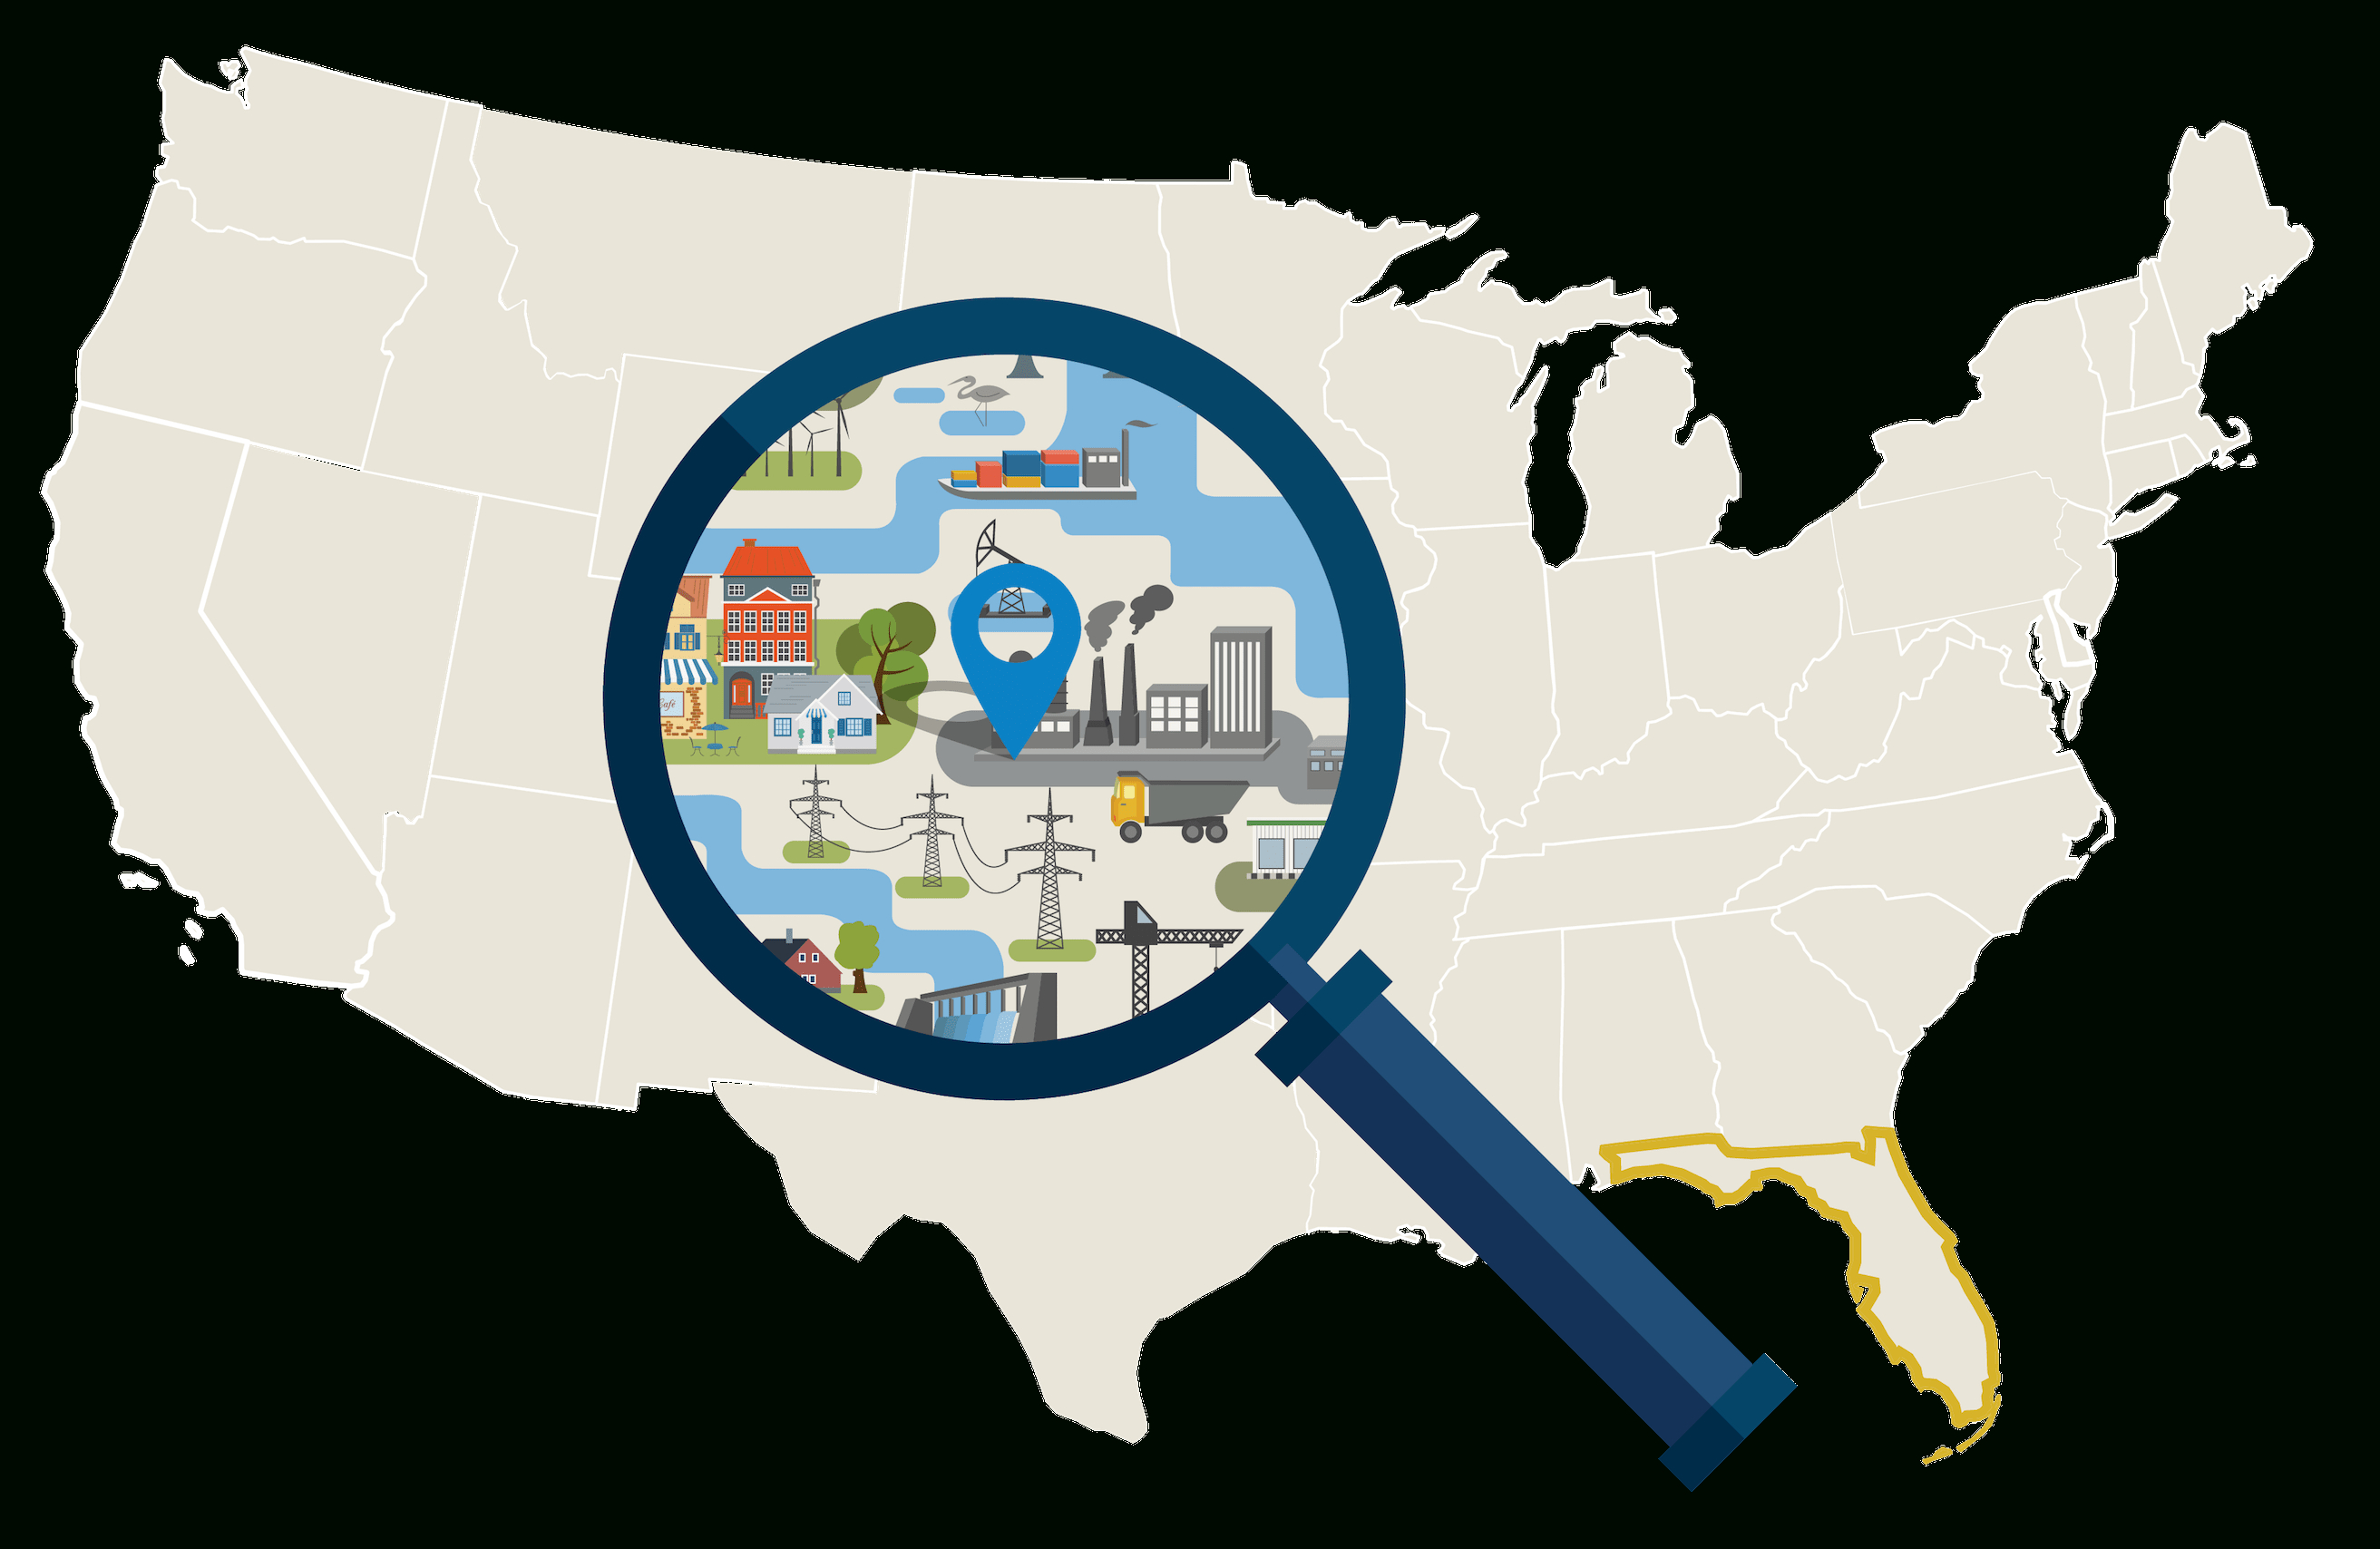 Safest Cities In Florida - See What Cities Made The List - Where Is Northport Florida On The Map